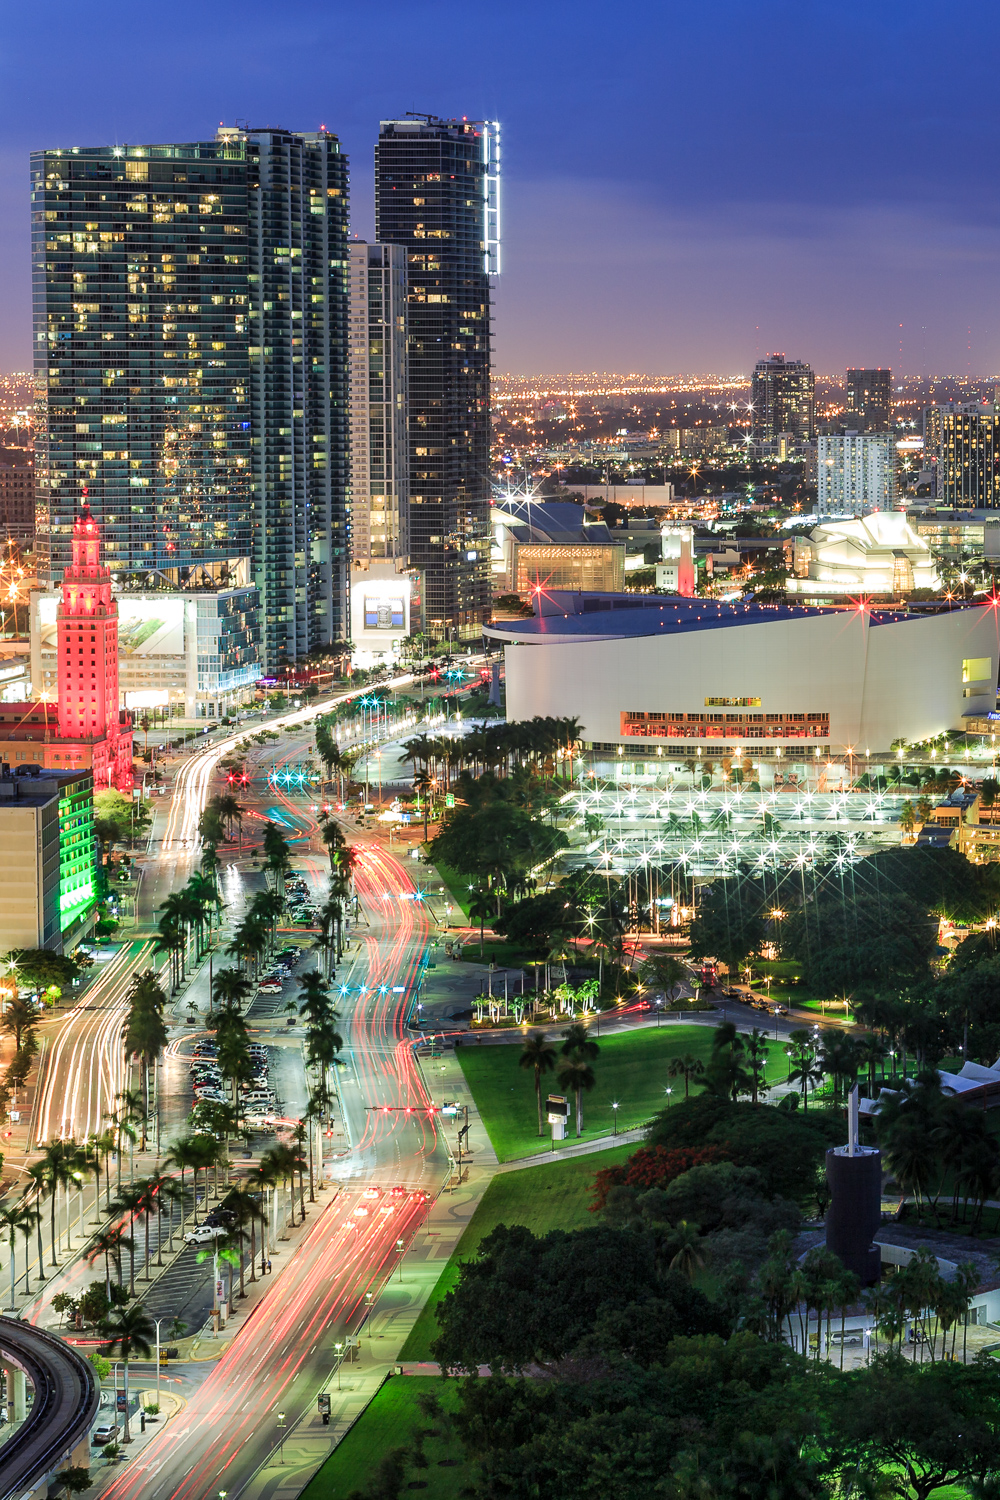 Miami_Downtown_Aerial_Night_Miami_Fort_Lauderdale_commercial_photographer_Franklin_Castillo.jpg